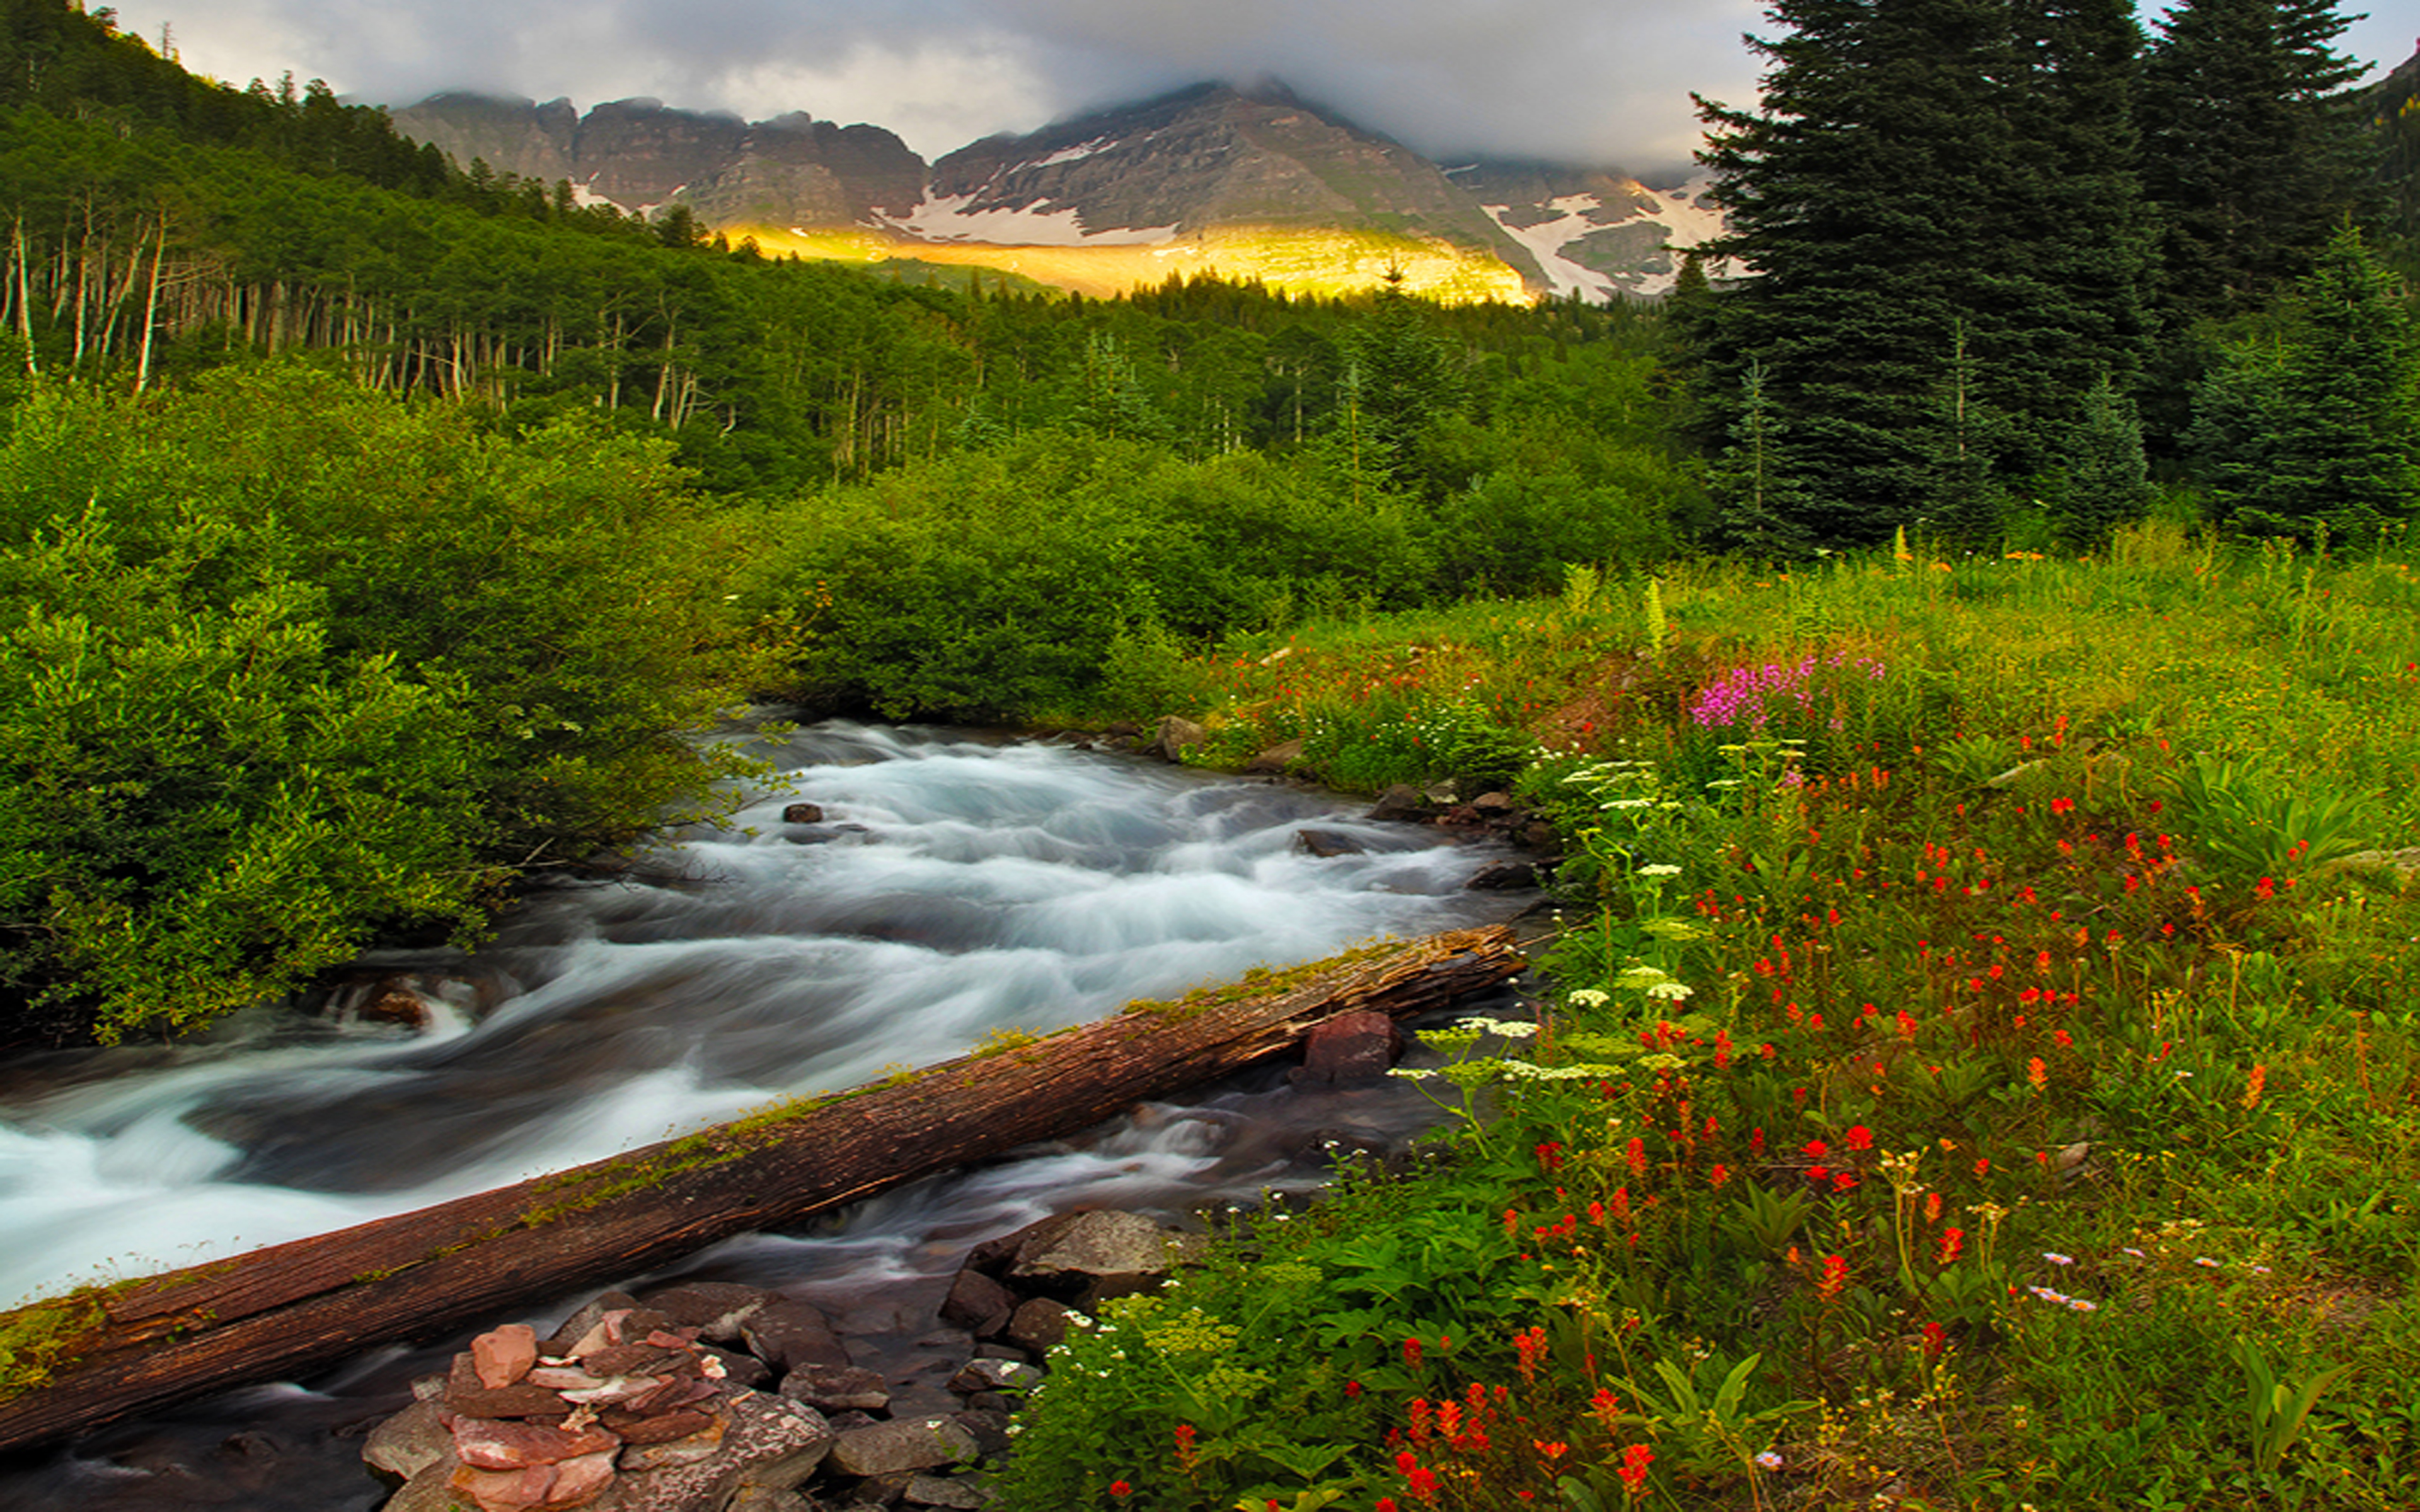 Fall Leaves Live Wallpaper Iphone Beautiful Scenery And Mountainous River Flowers Green